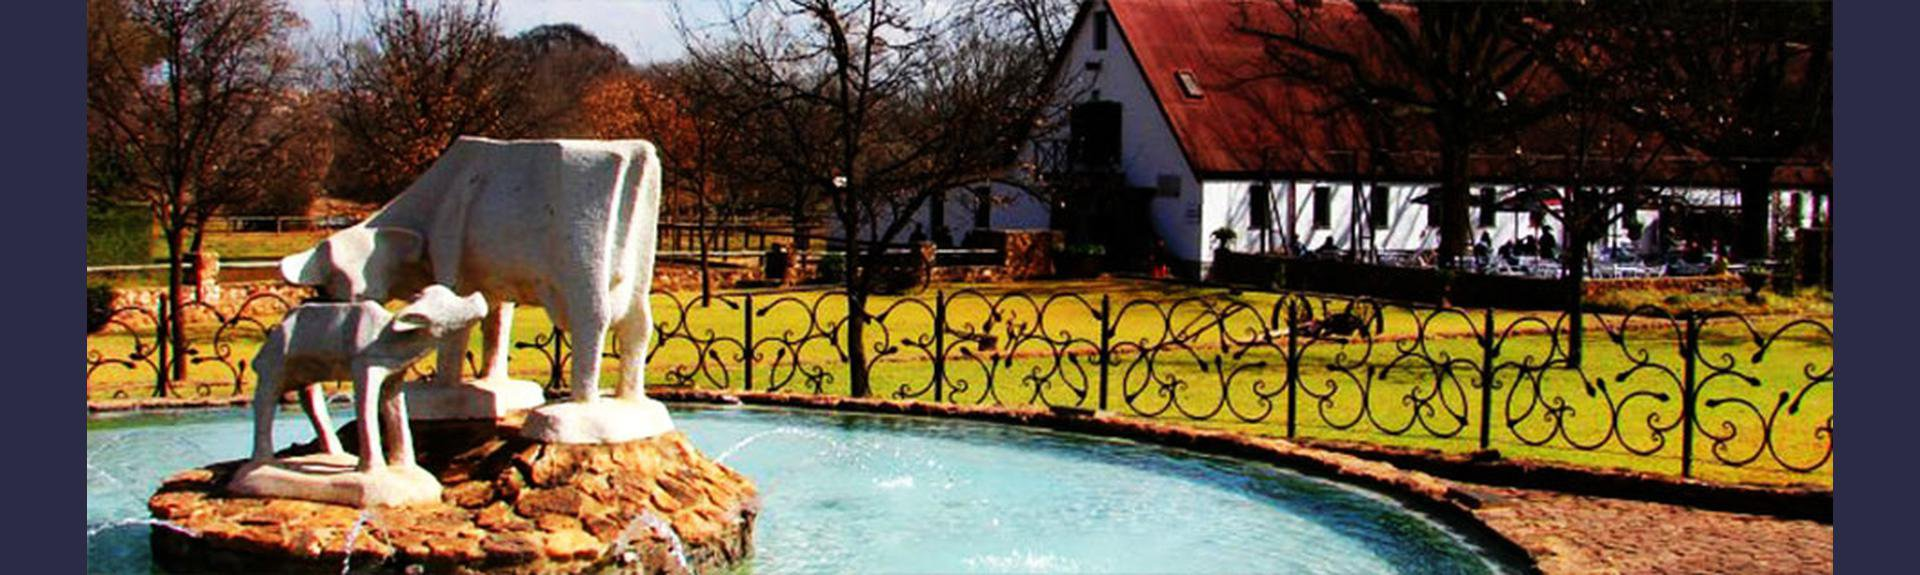 Irene Dairy Farm - Kids Party Venue + Restaurant - Centurion